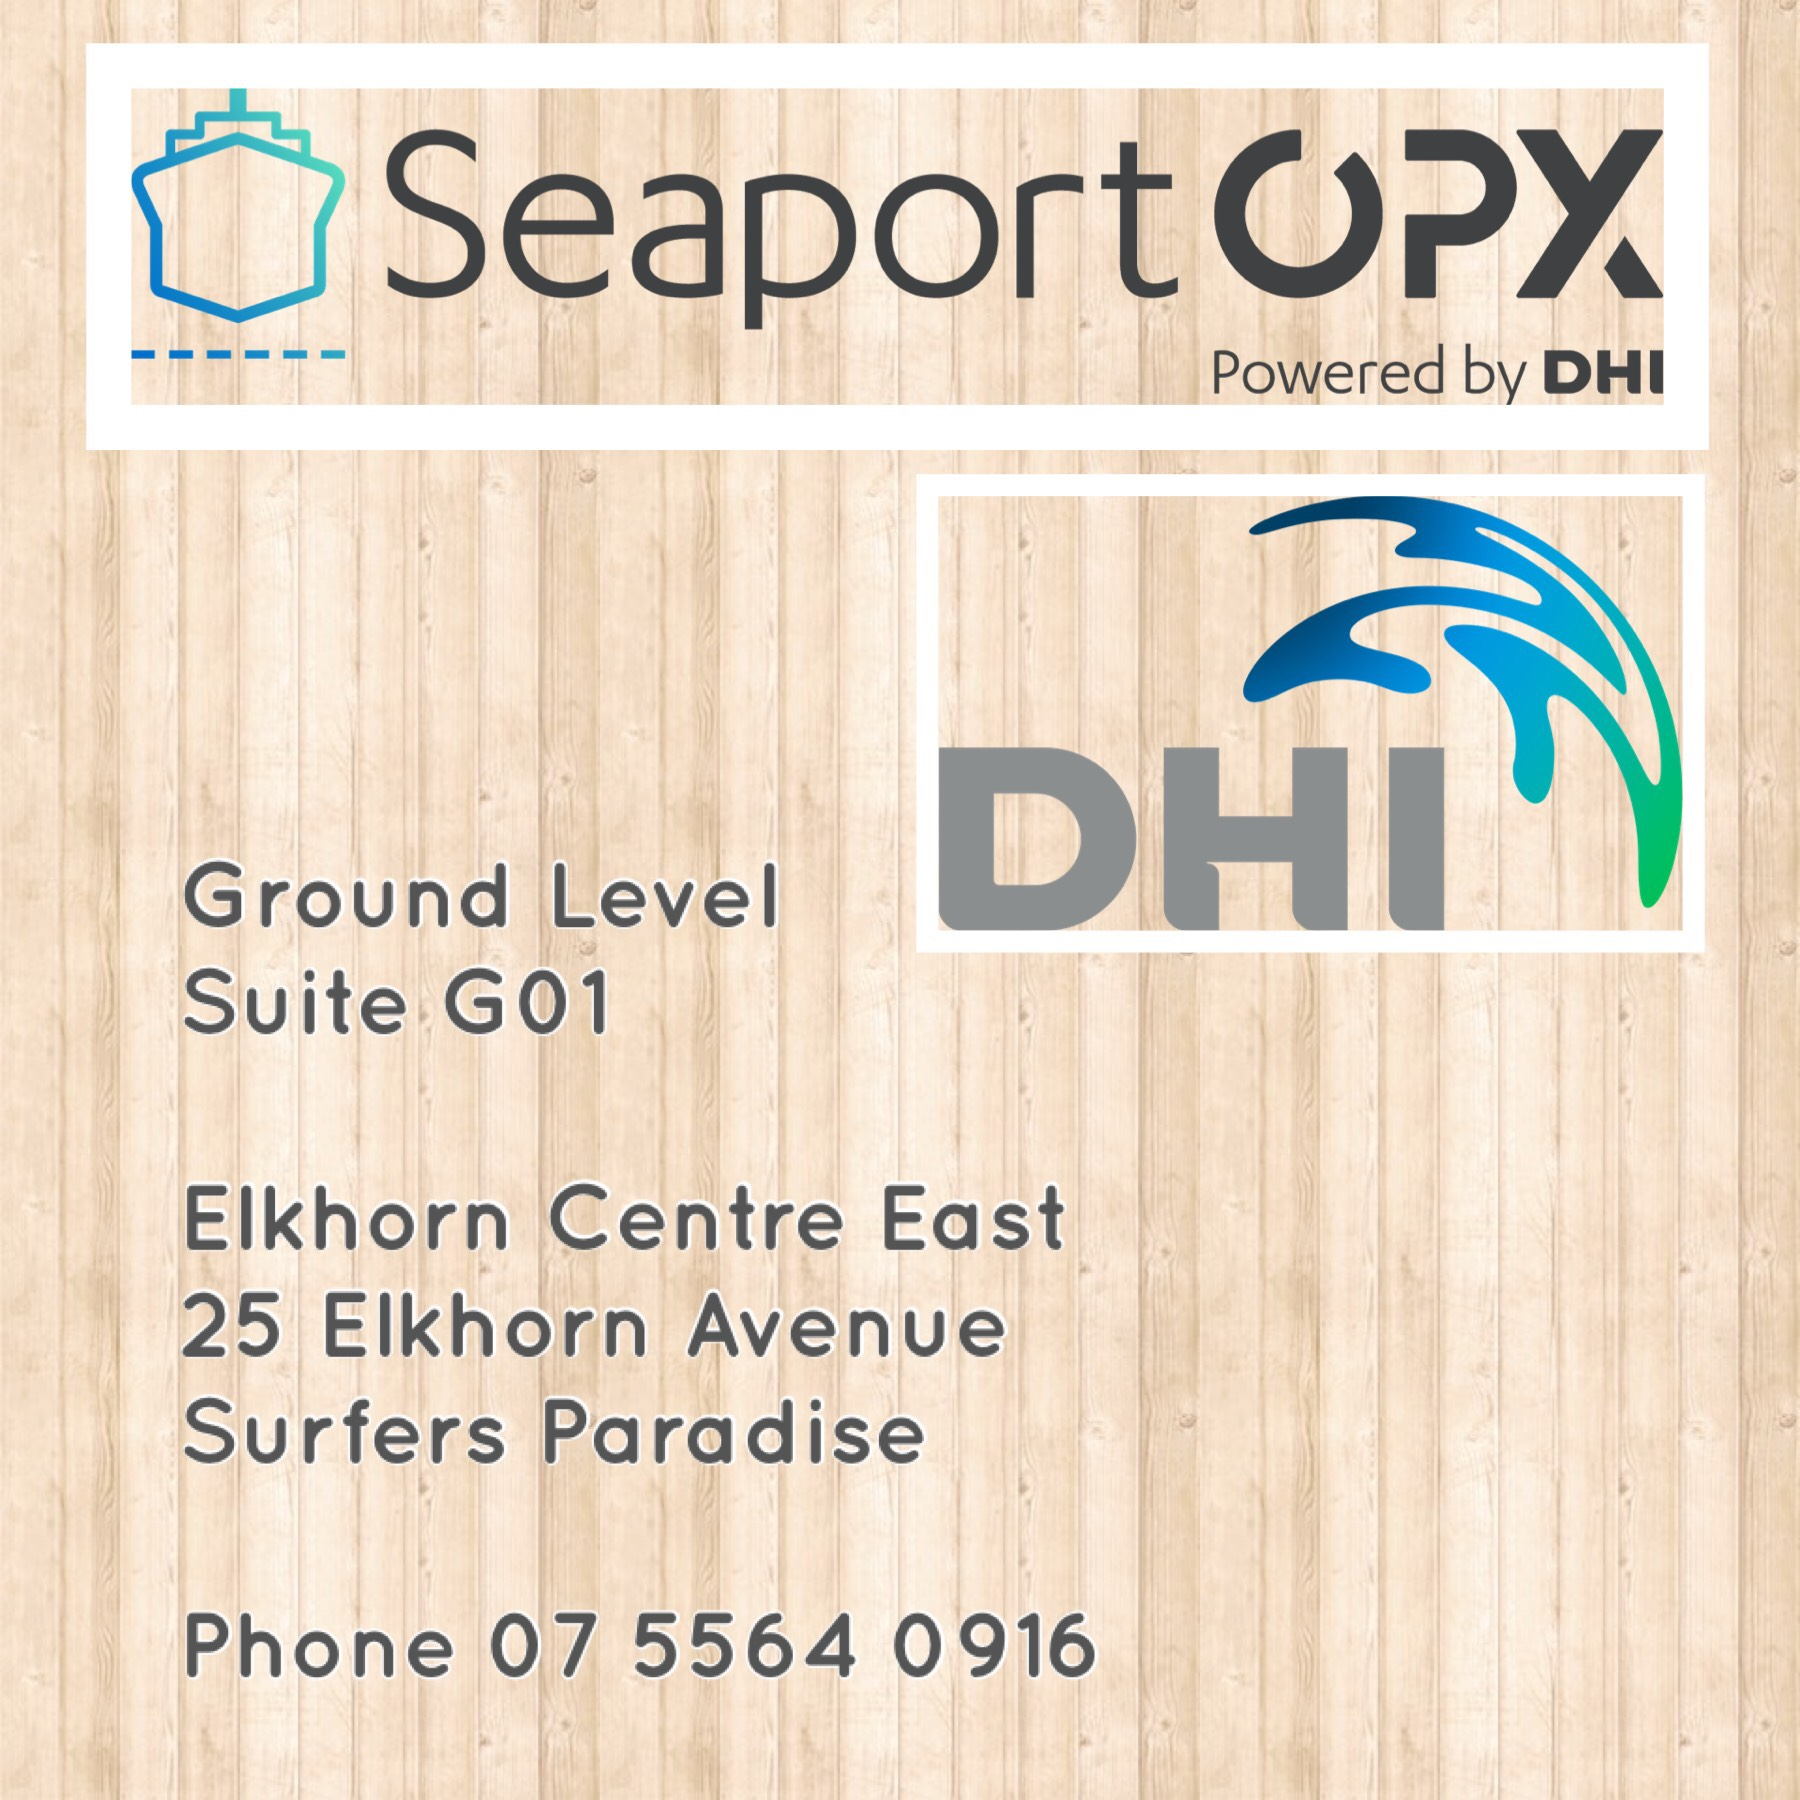 Elkhorn Centre East: Suite 01 - SeaPort OPX